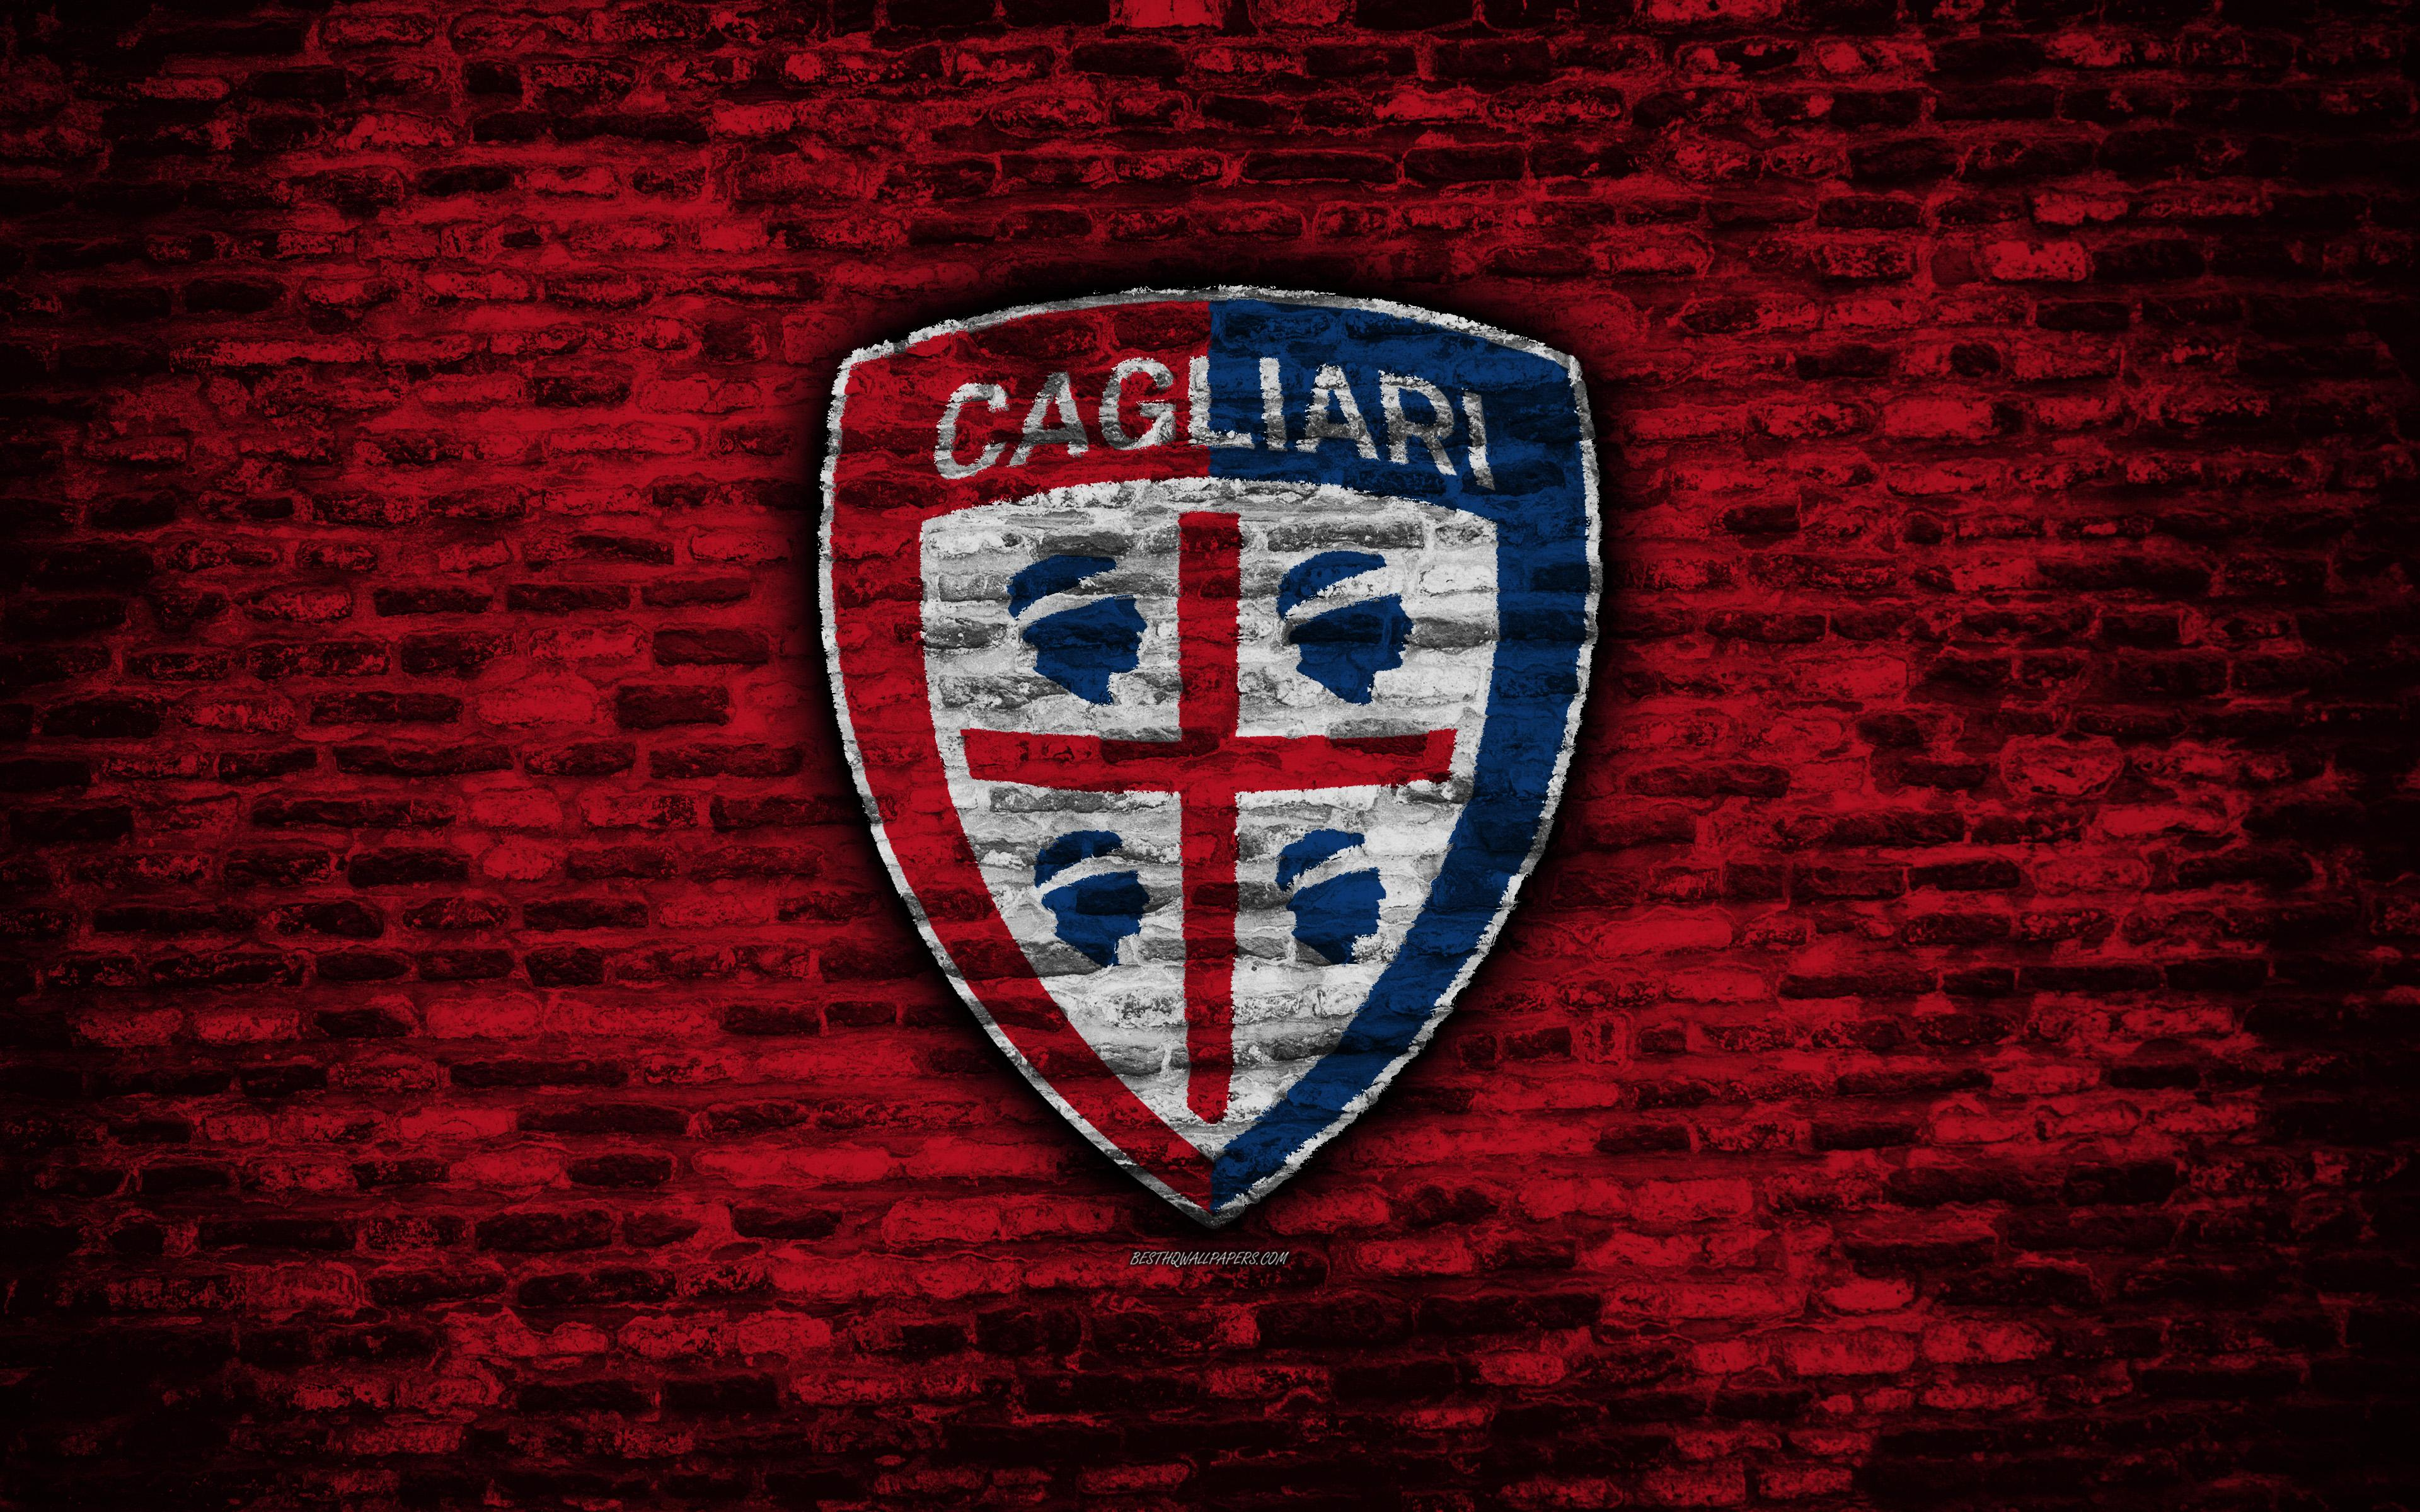 Download wallpapers Cagliari FC, 4k, logo, brick wall, Serie A